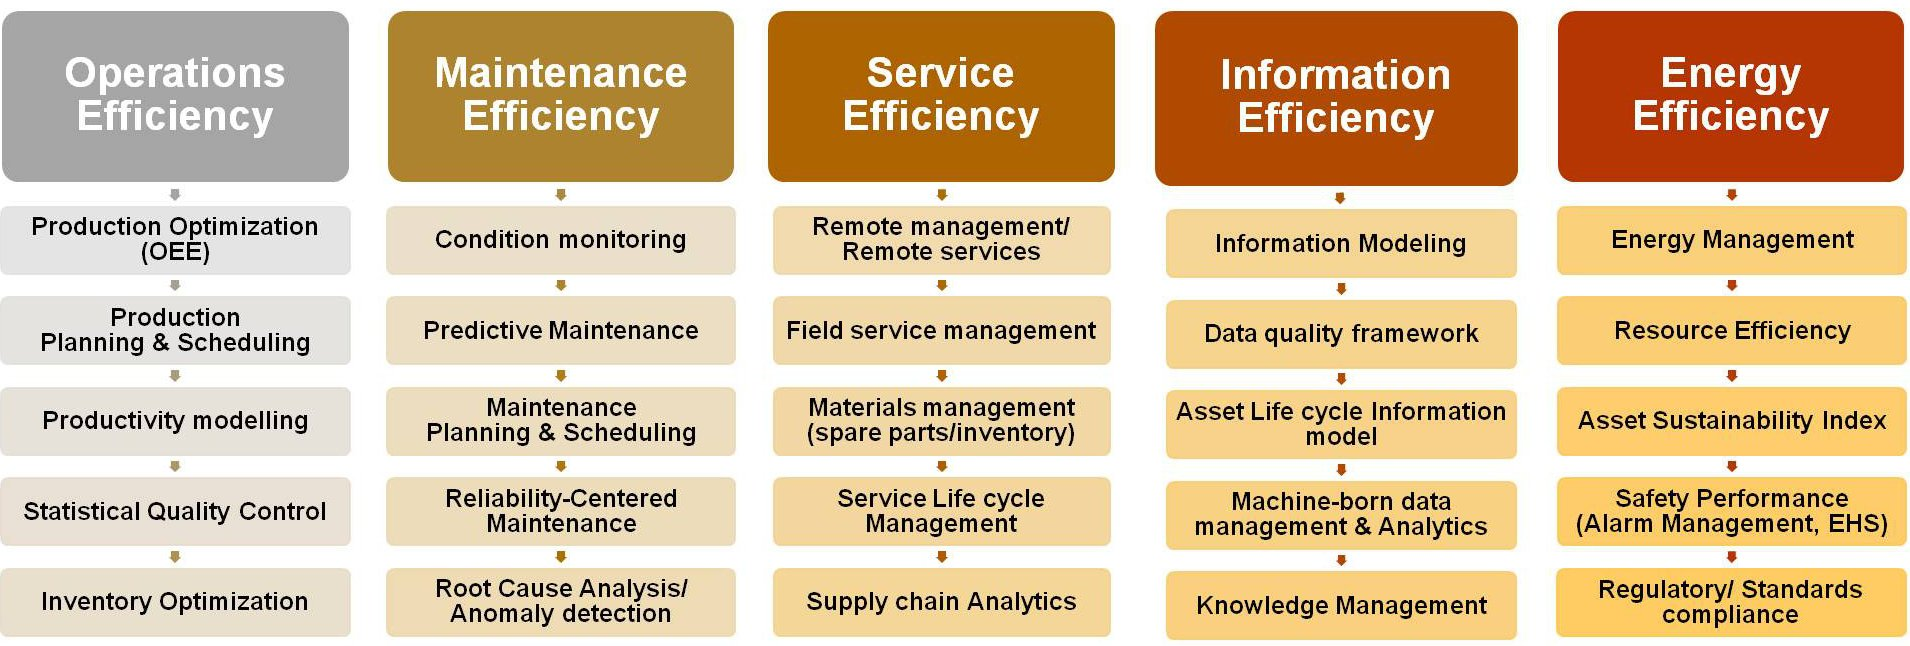 Table showing different levels of asset efficiency